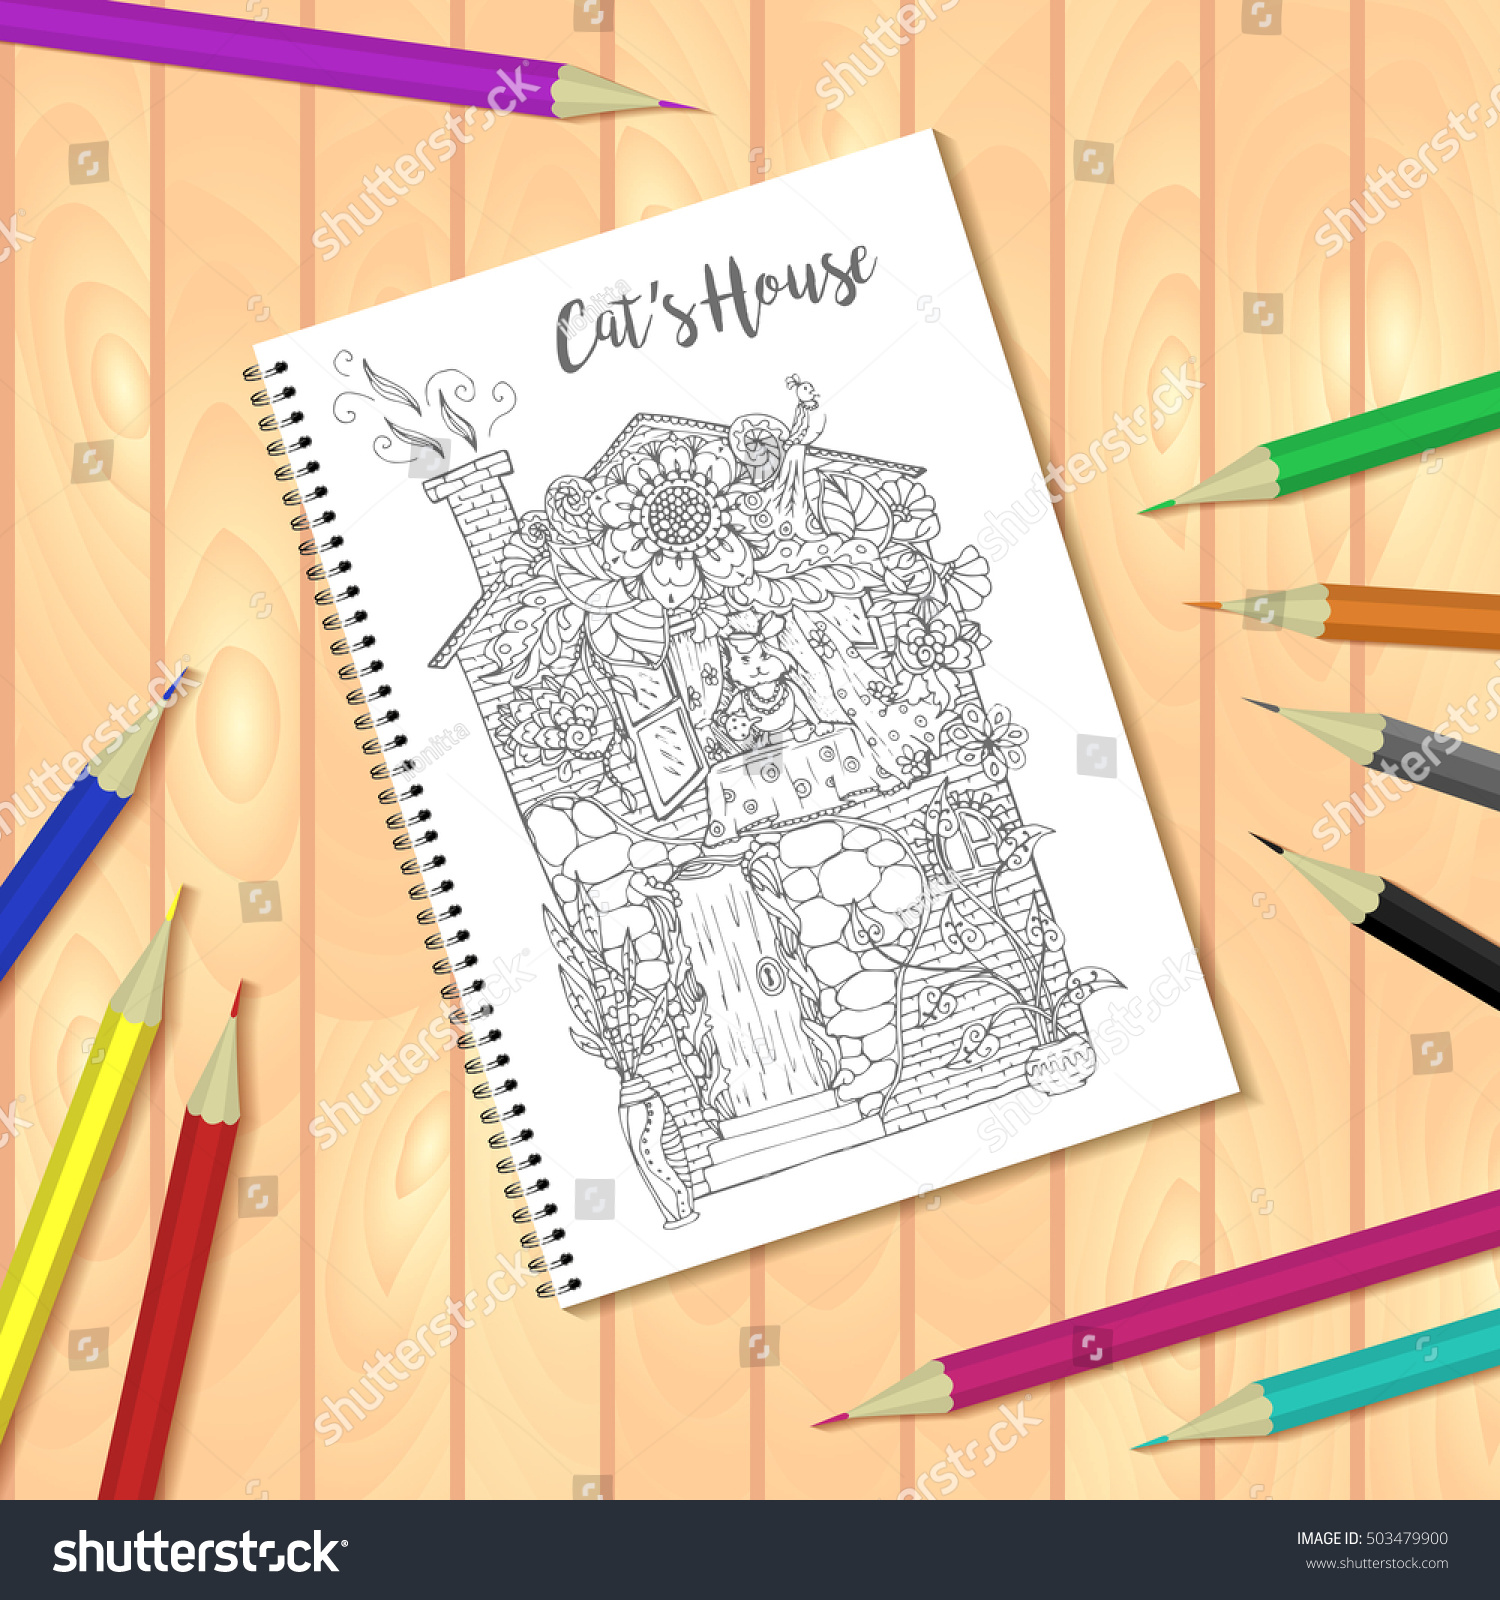 spiral bound notepad or coloring book with colorful pencils and coloring pages picture house with - Coloring Book Paper Stock